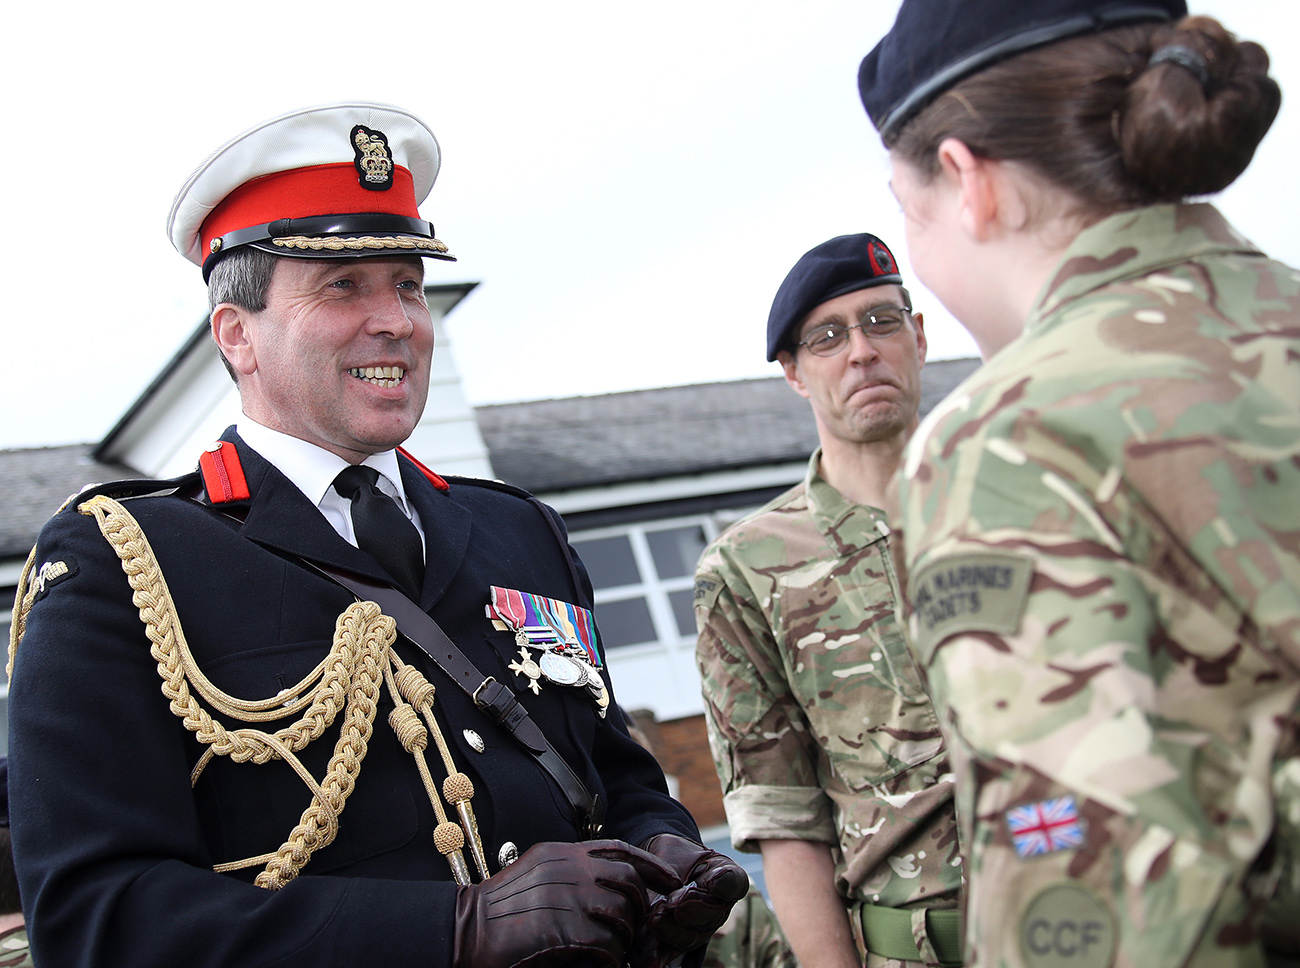 Senior Royal Marine opens school cadet force in Newcastle